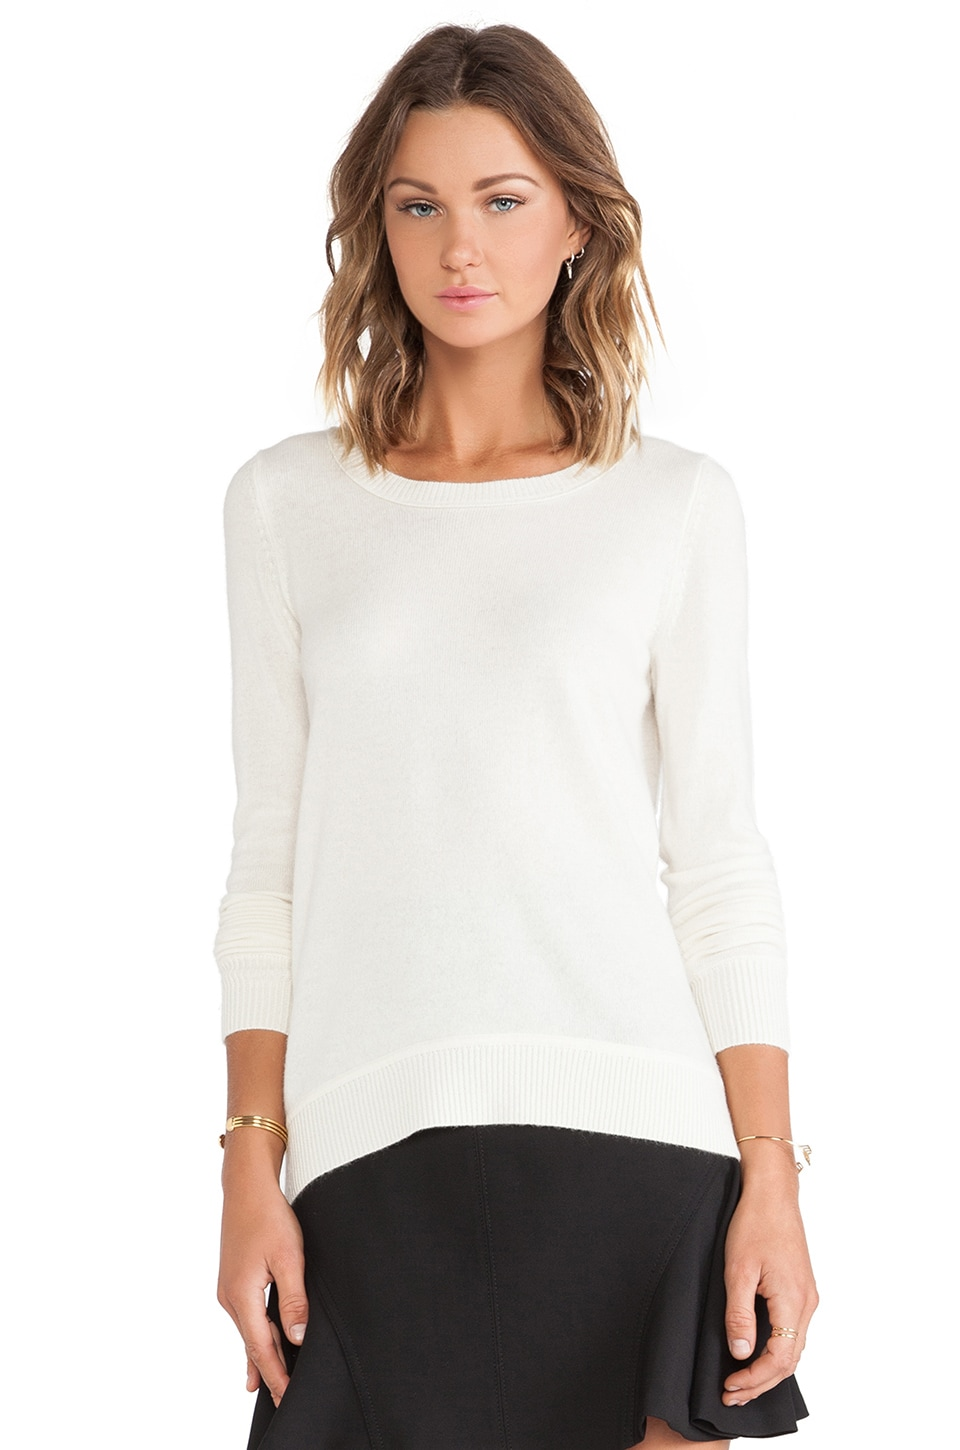 Diane von Furstenberg Solid Sweater in Ivory